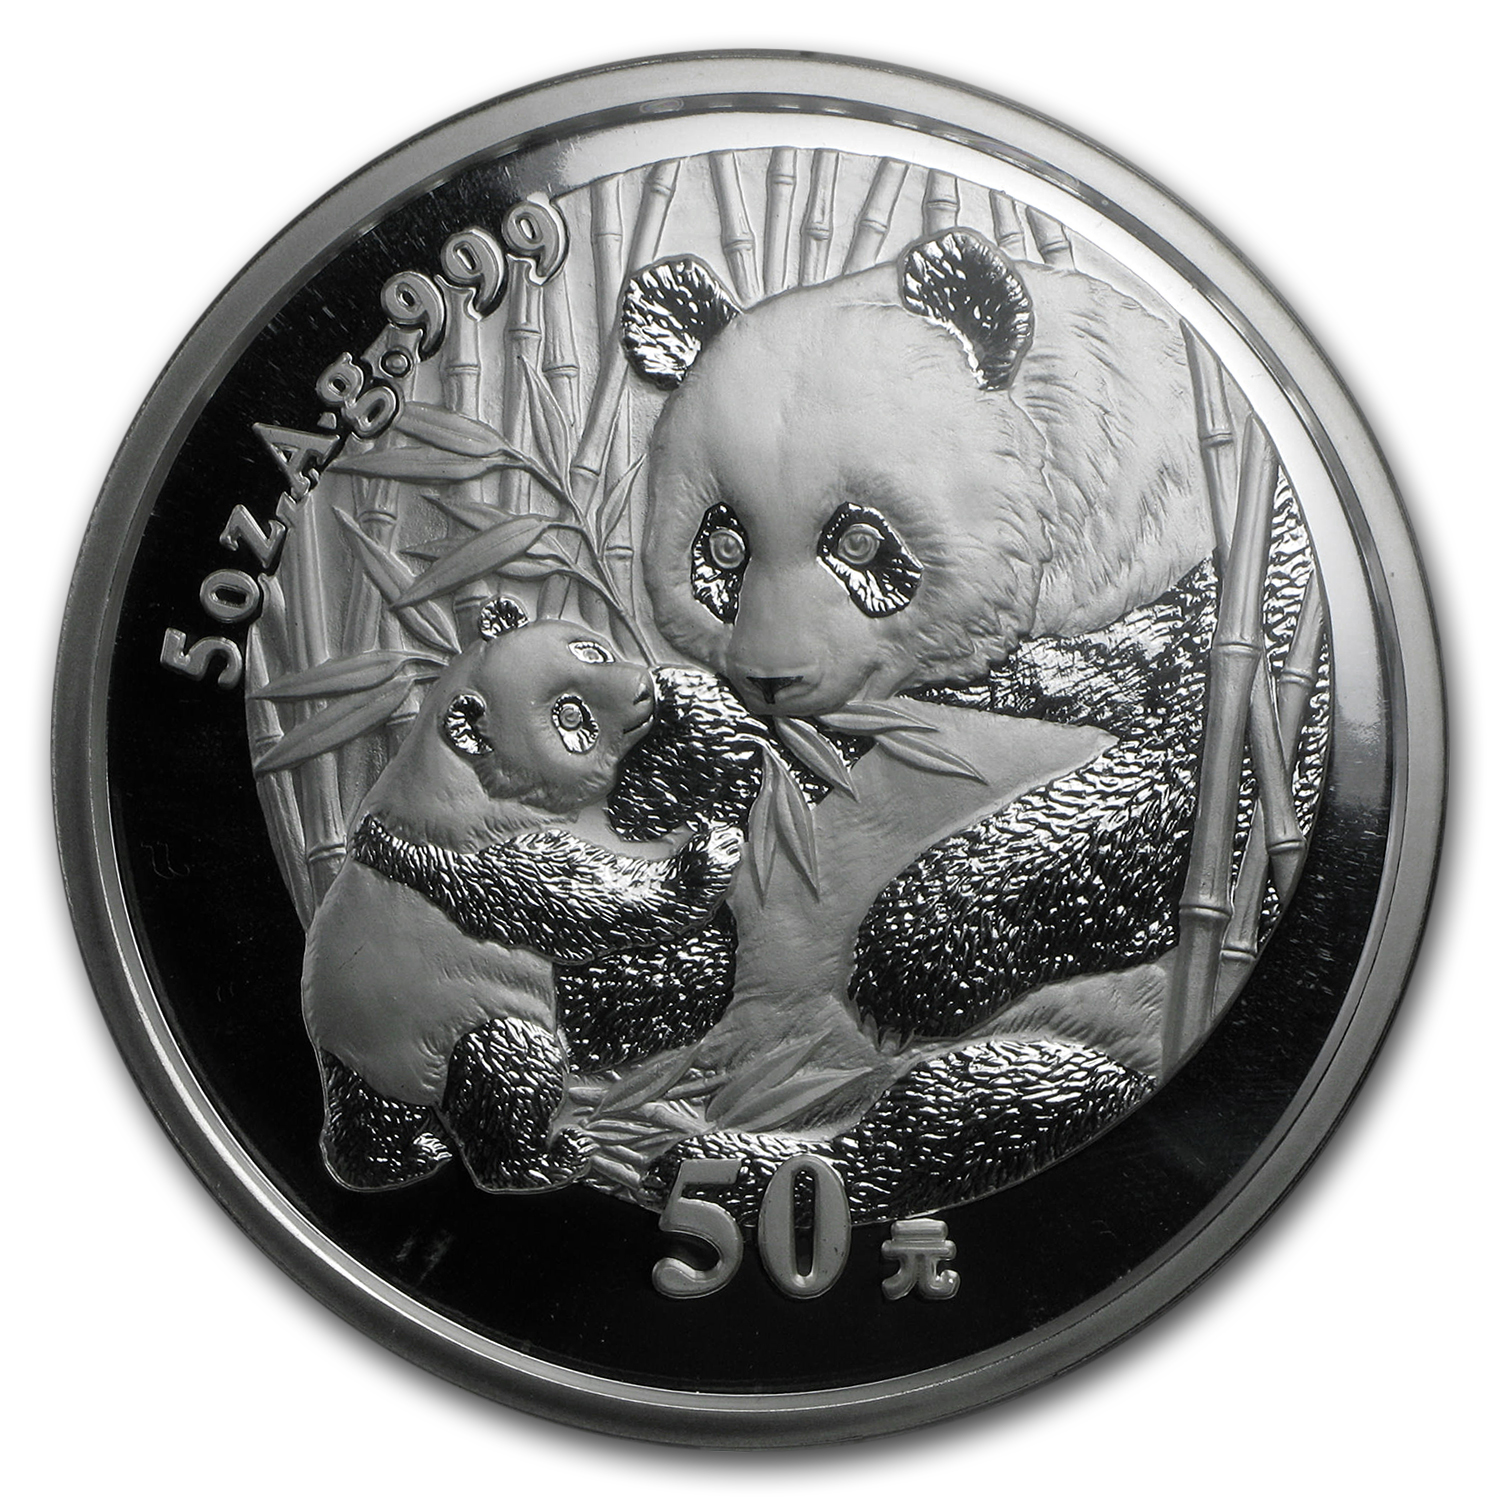 2005 - (5 oz) Silver Panda Proof (W/Box & Coa)